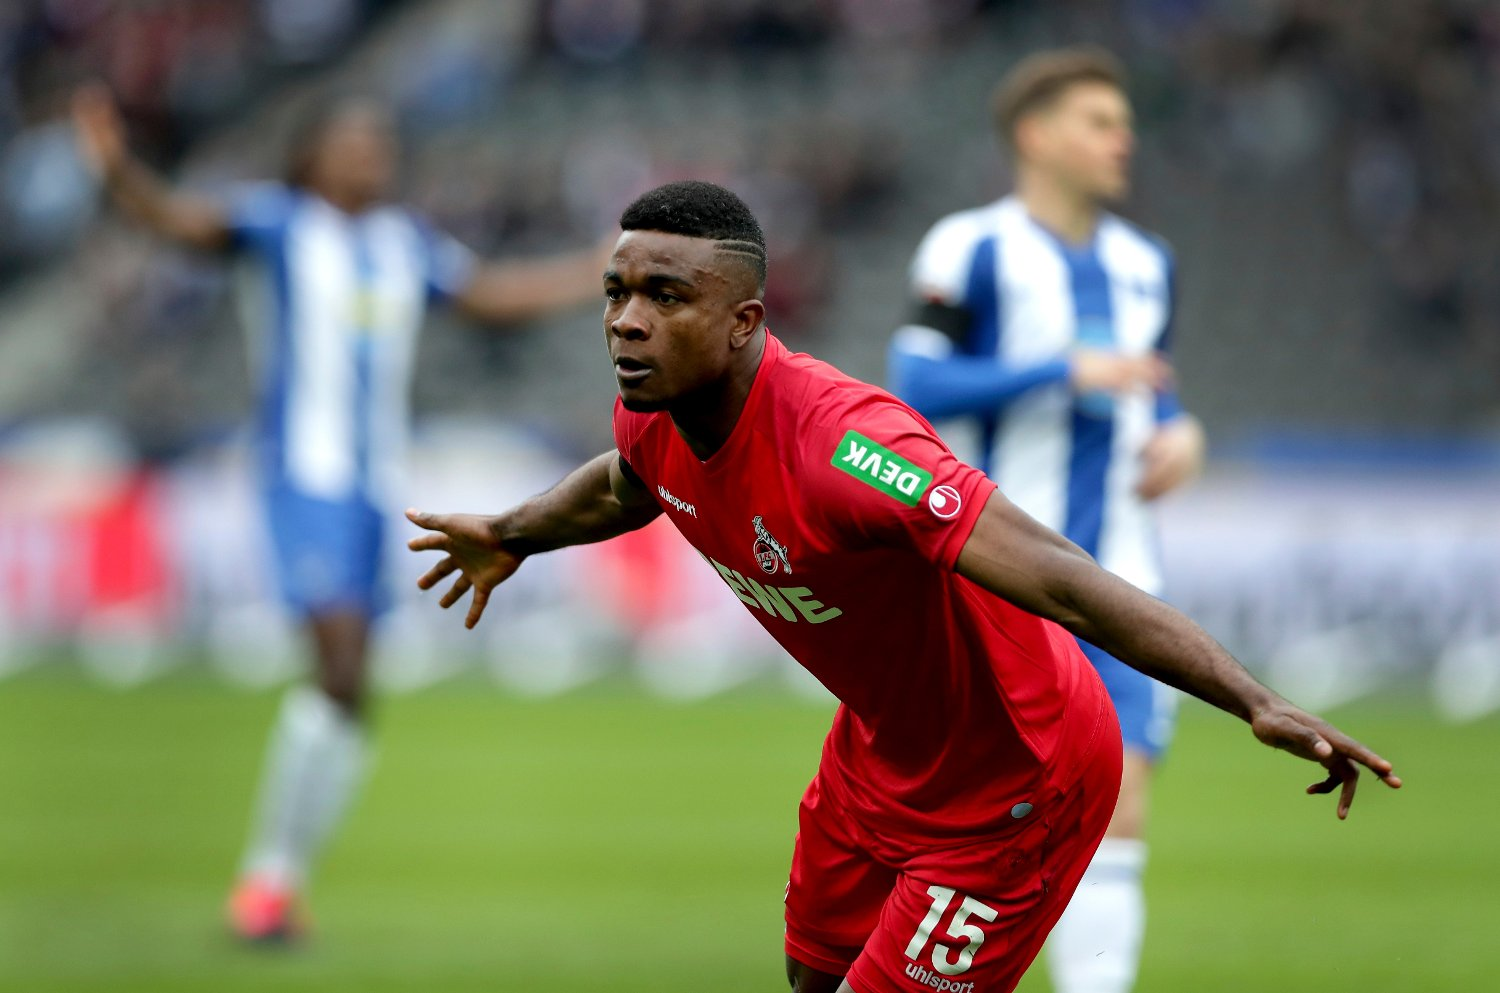 Germany Bundesliga Soccer Cologne's Jhon Cordoba, front, celebrates after scoring the opening goal during the German Bundesliga soccer match between Hertha BSC Berlin and 1.FC Cologne in Berlin, Germany, Saturday, Feb. 22, 2020.